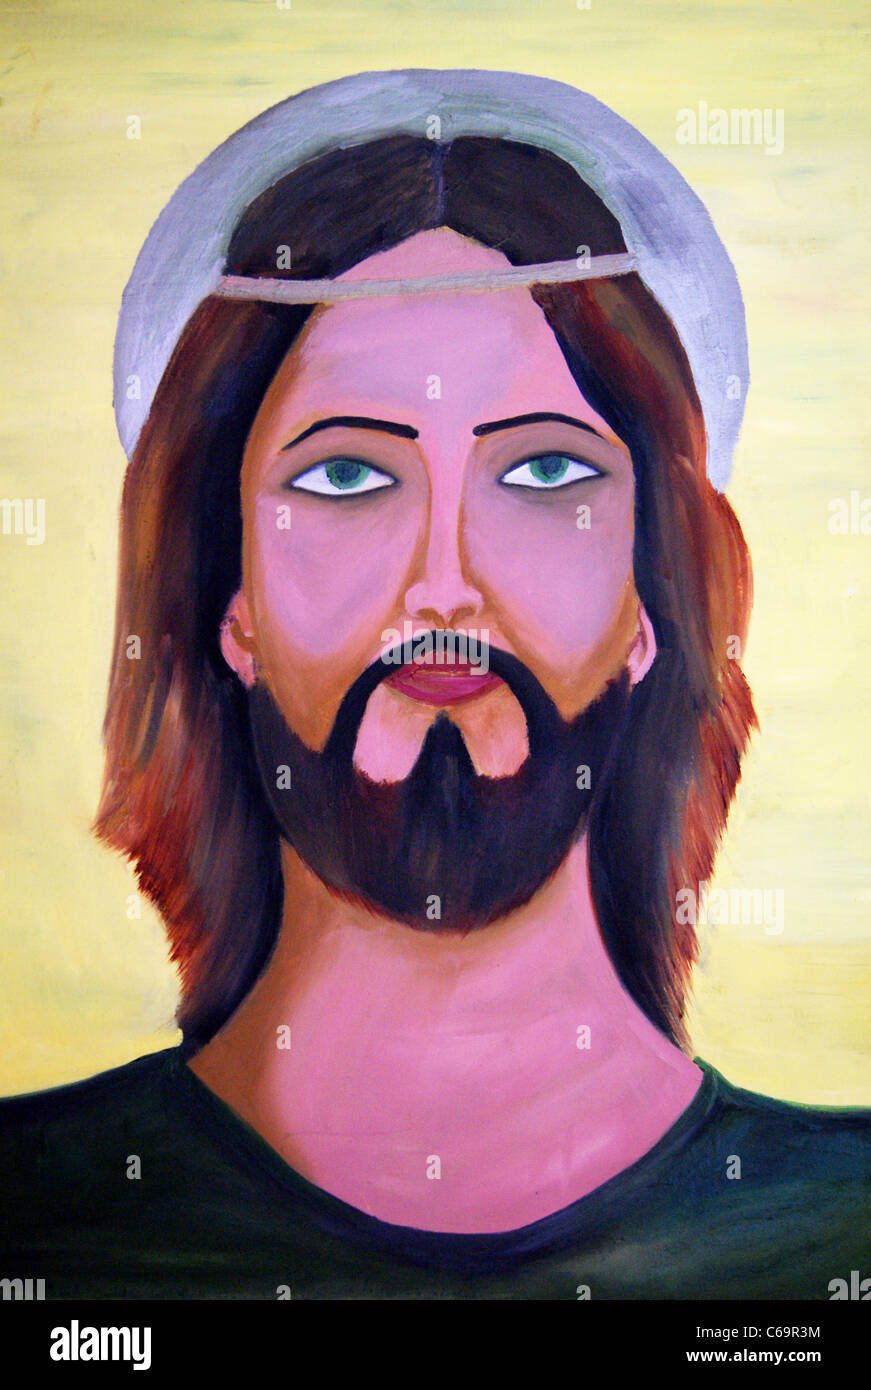 Jesus King Stock Photos & Jesus King Stock Images - Alamy